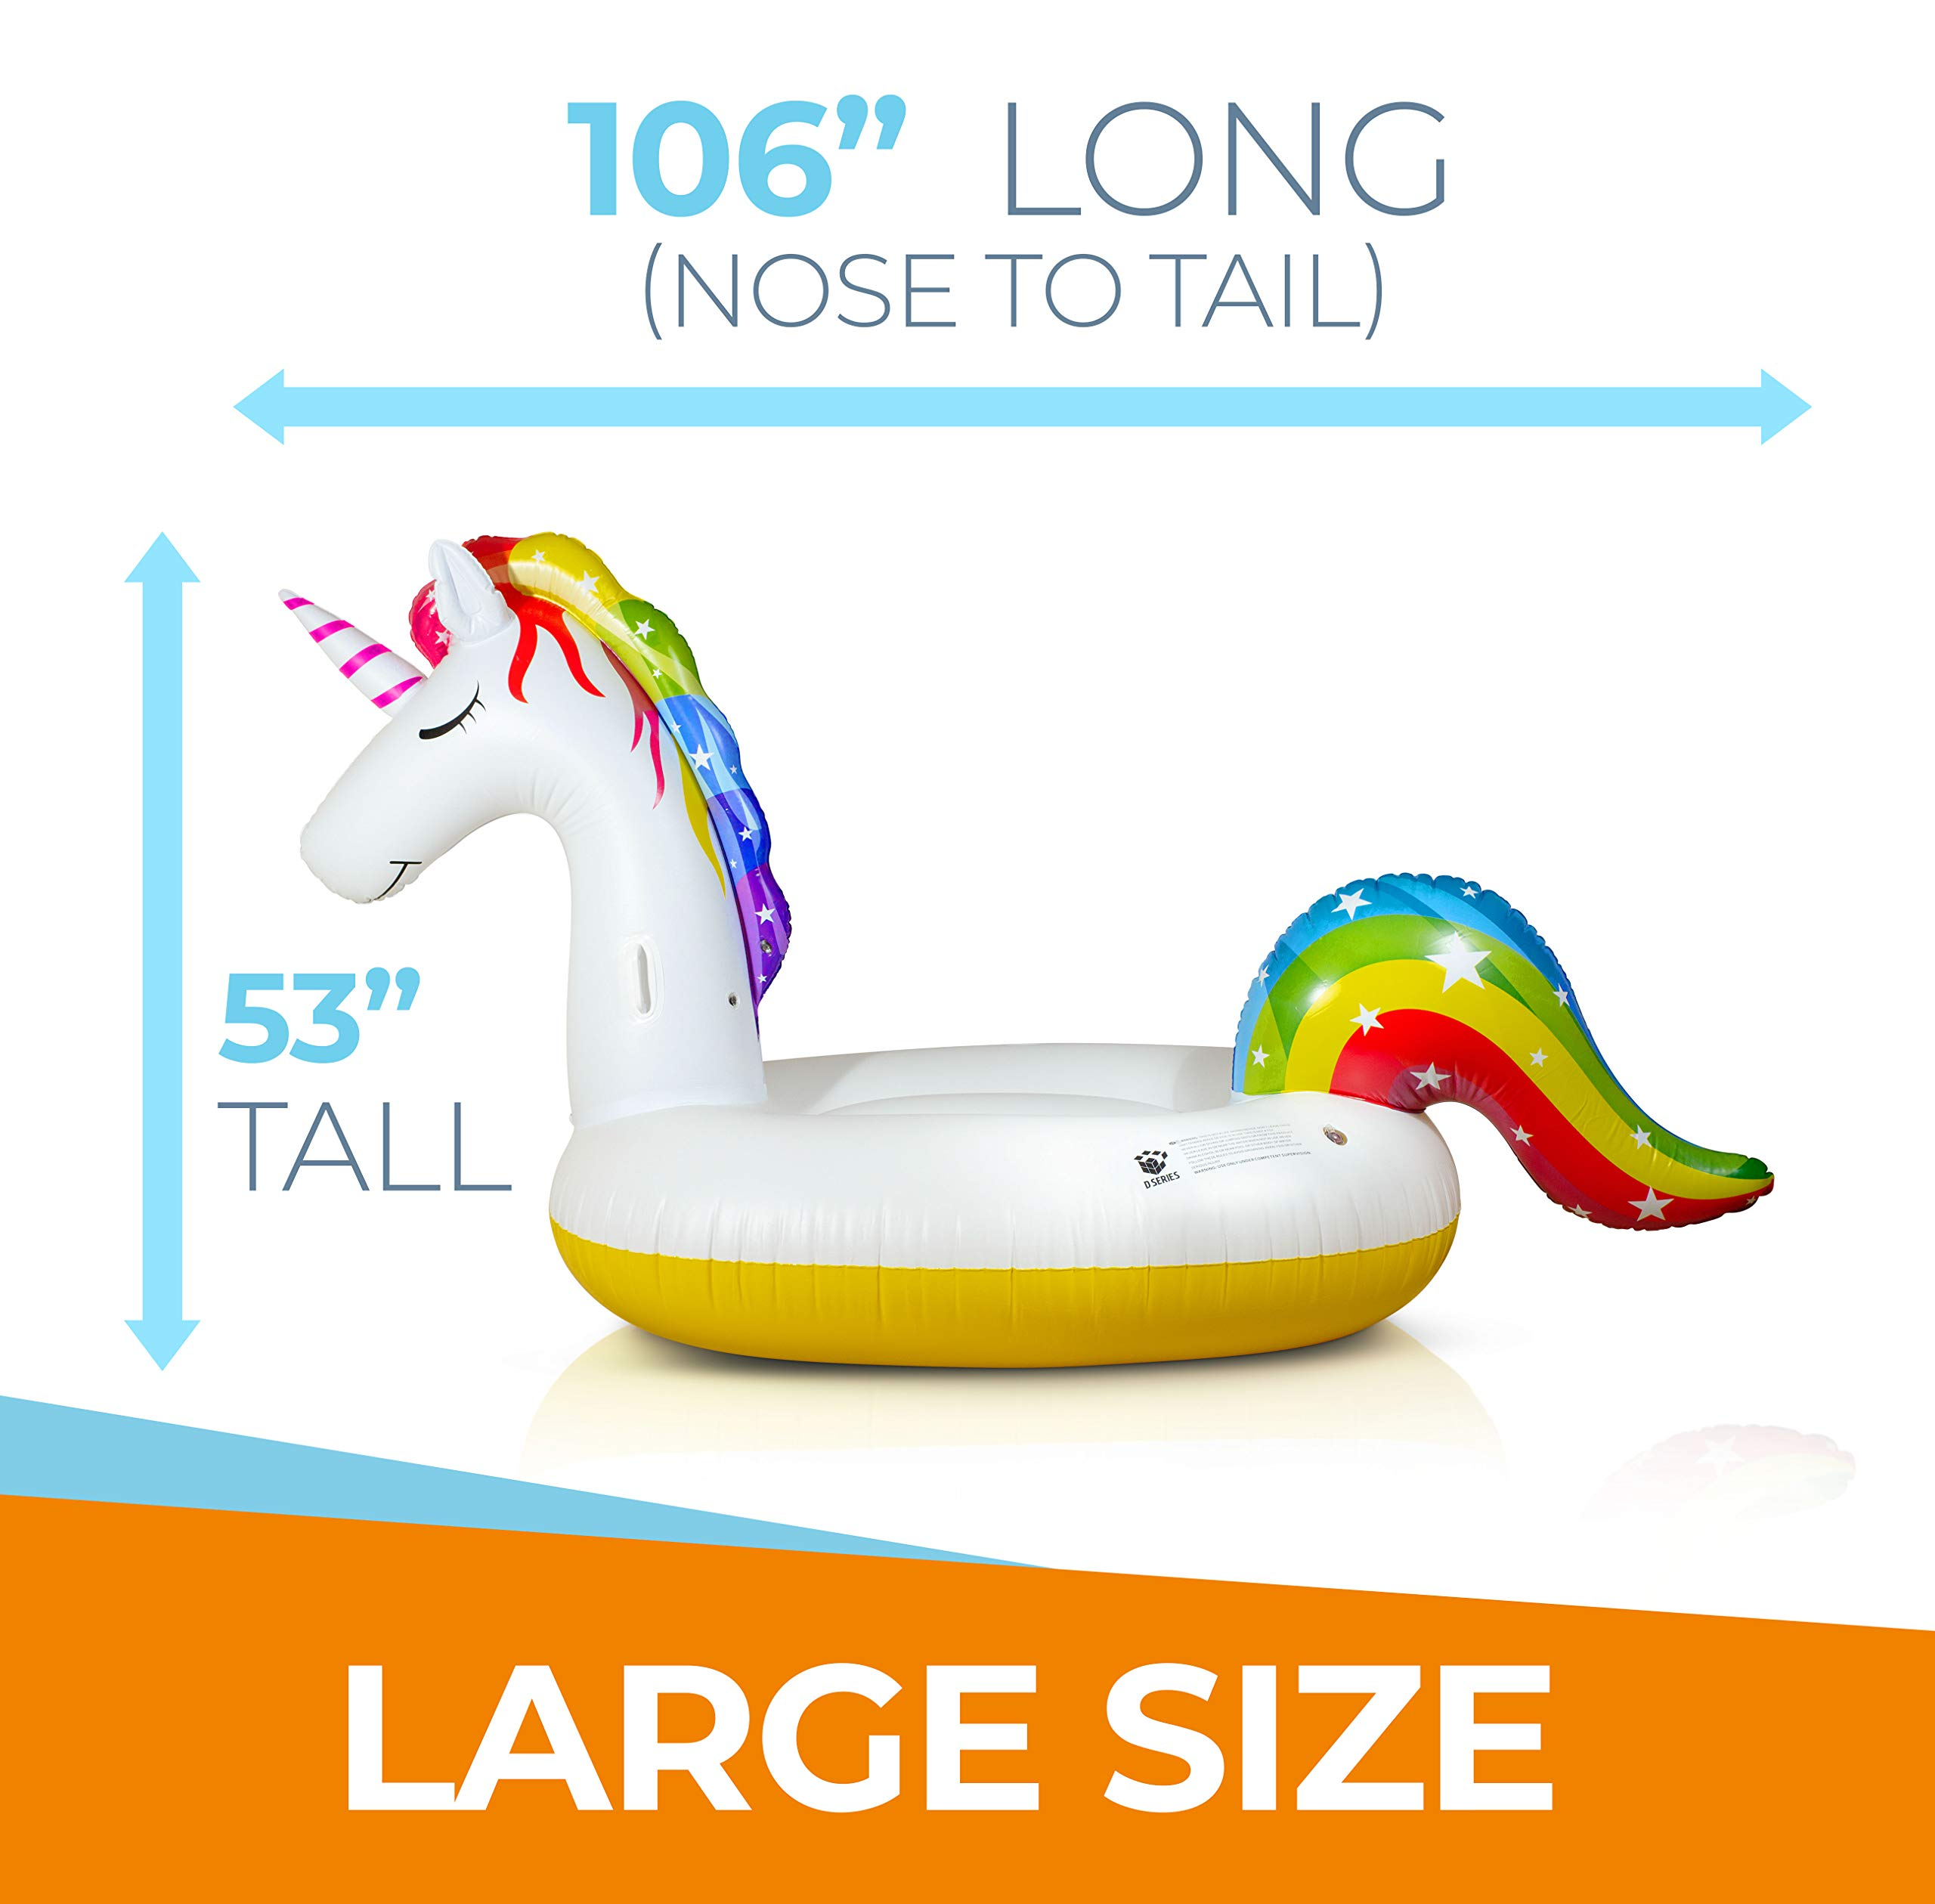 Giant Inflatable Unicorn Pool Float – Rapid Inflate and Deflate, Cup Holder, Safety Grab Handles, CE and SGS Certified… 9